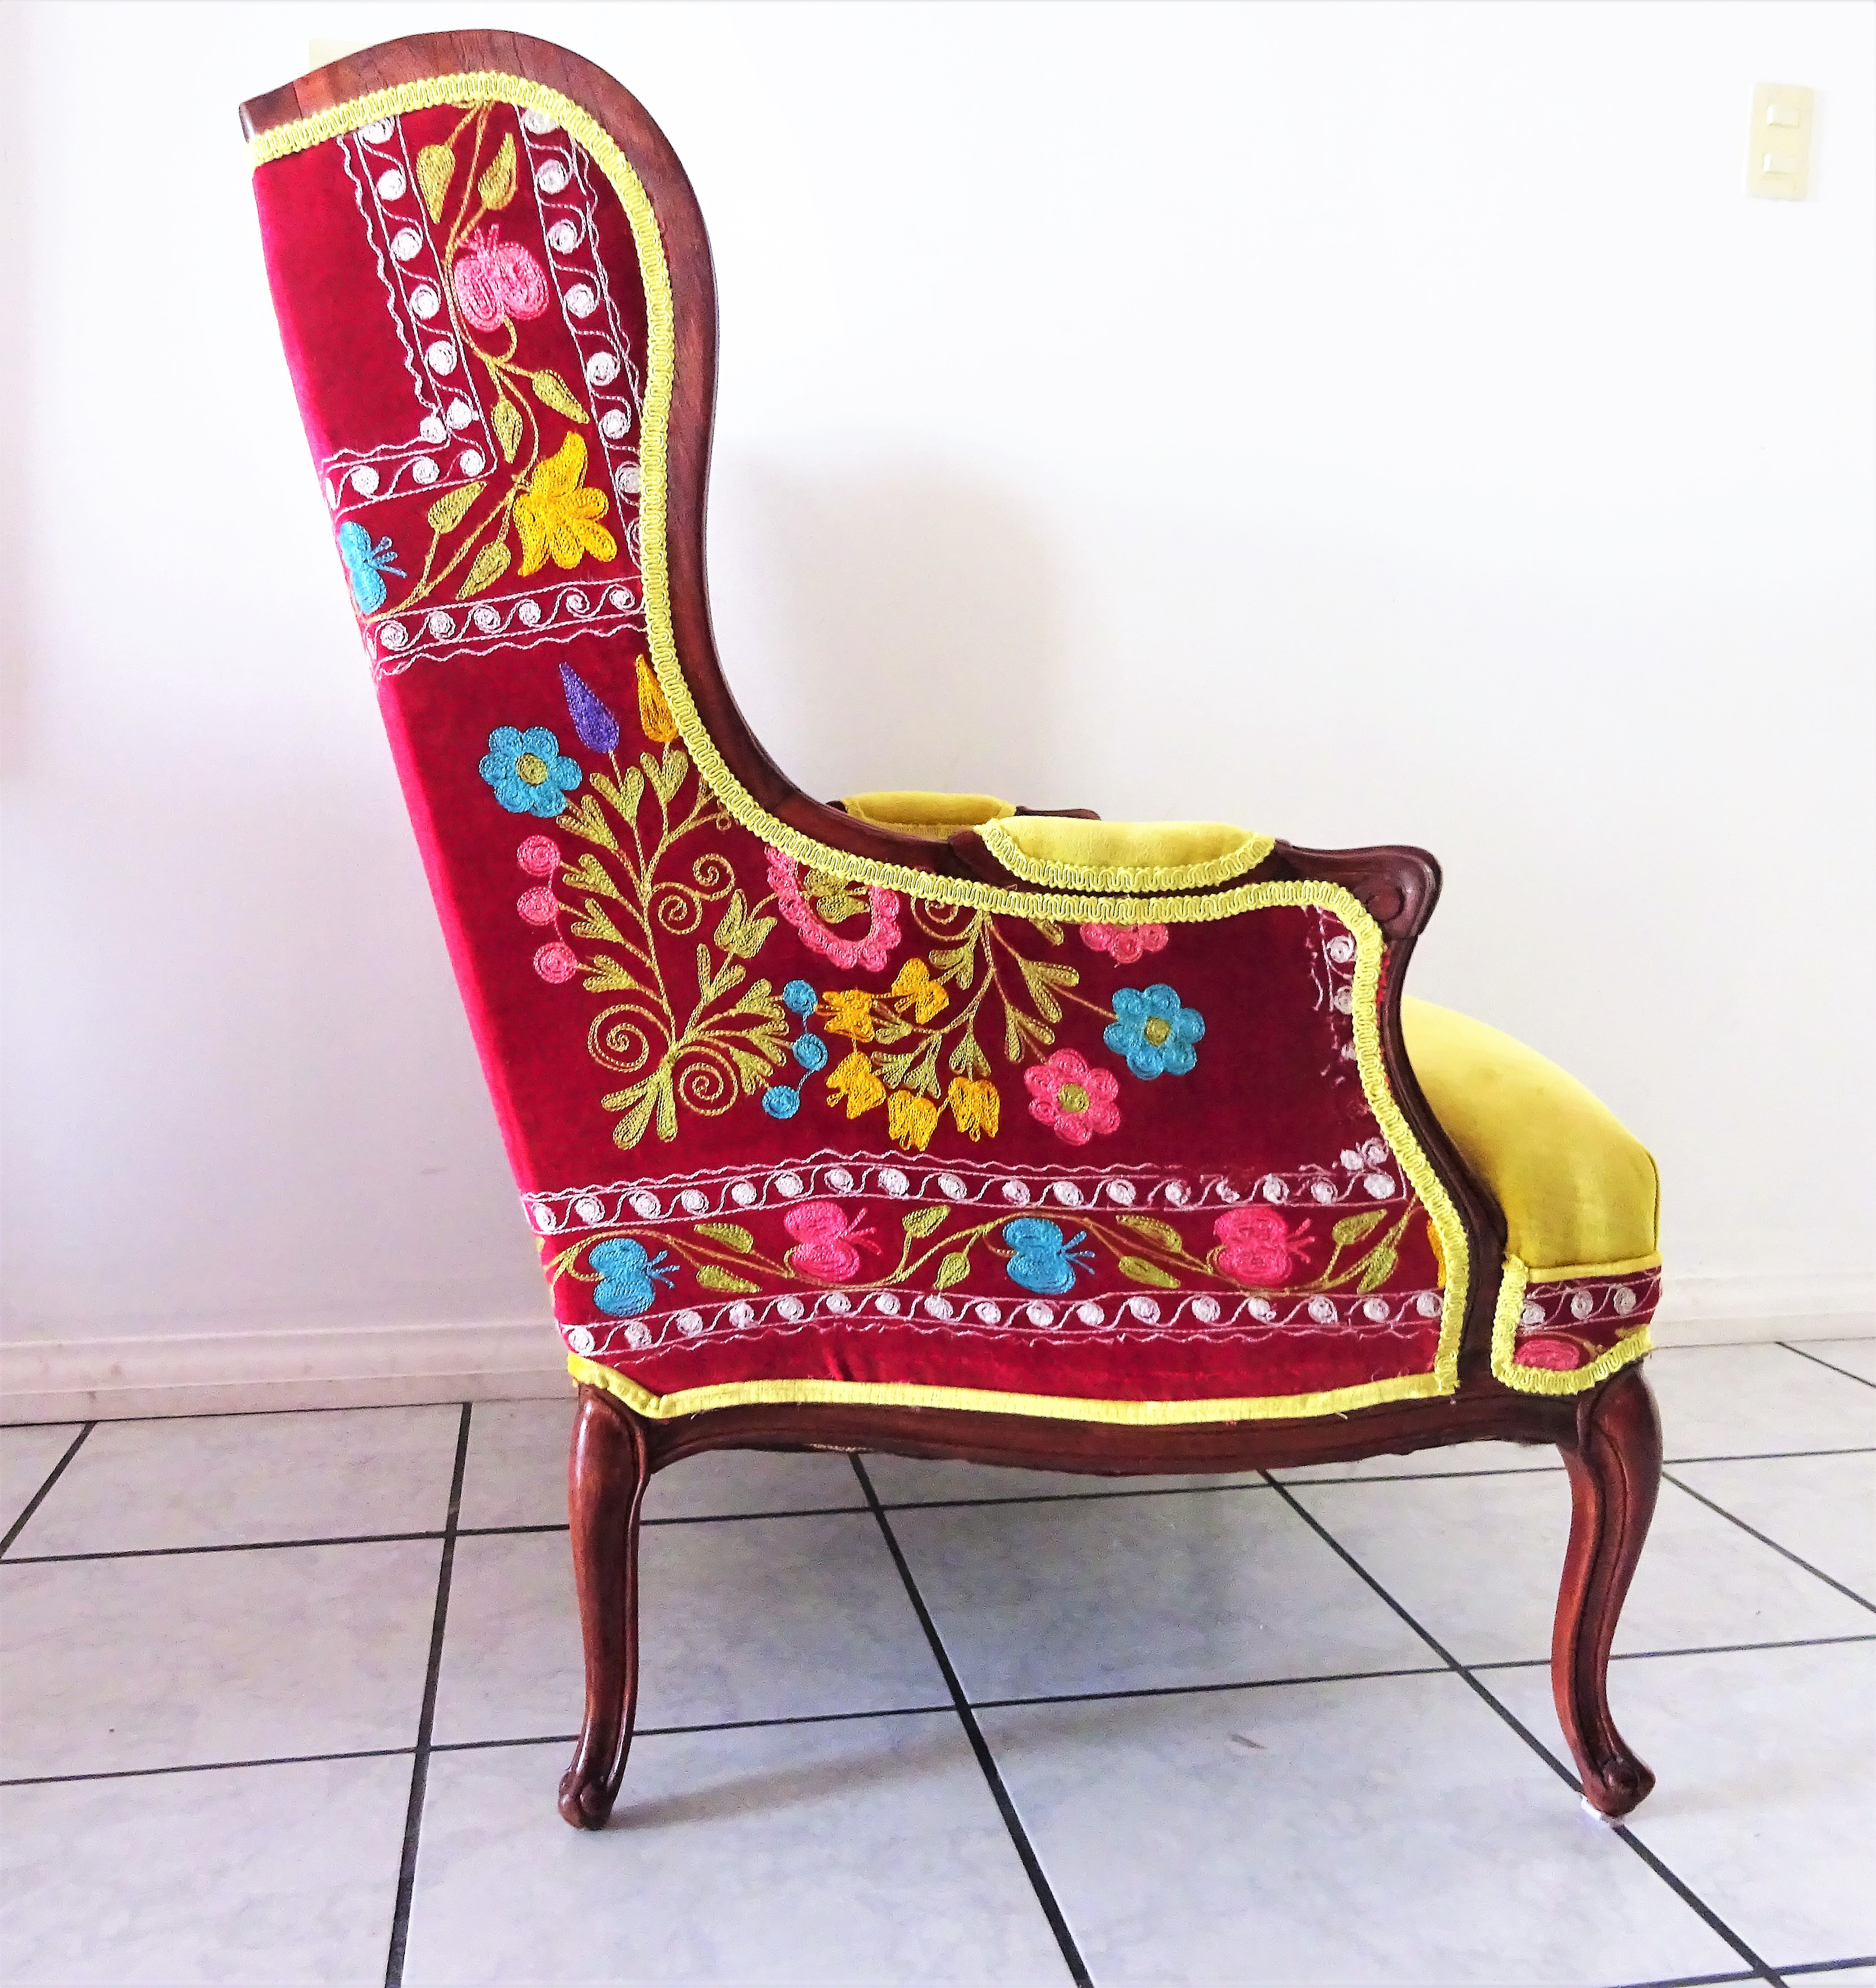 Boho Chic Early 20th Century Suzani Embroidery U0026 Gold Velvet Bohemian  Wooden Wingback Armchair For Sale